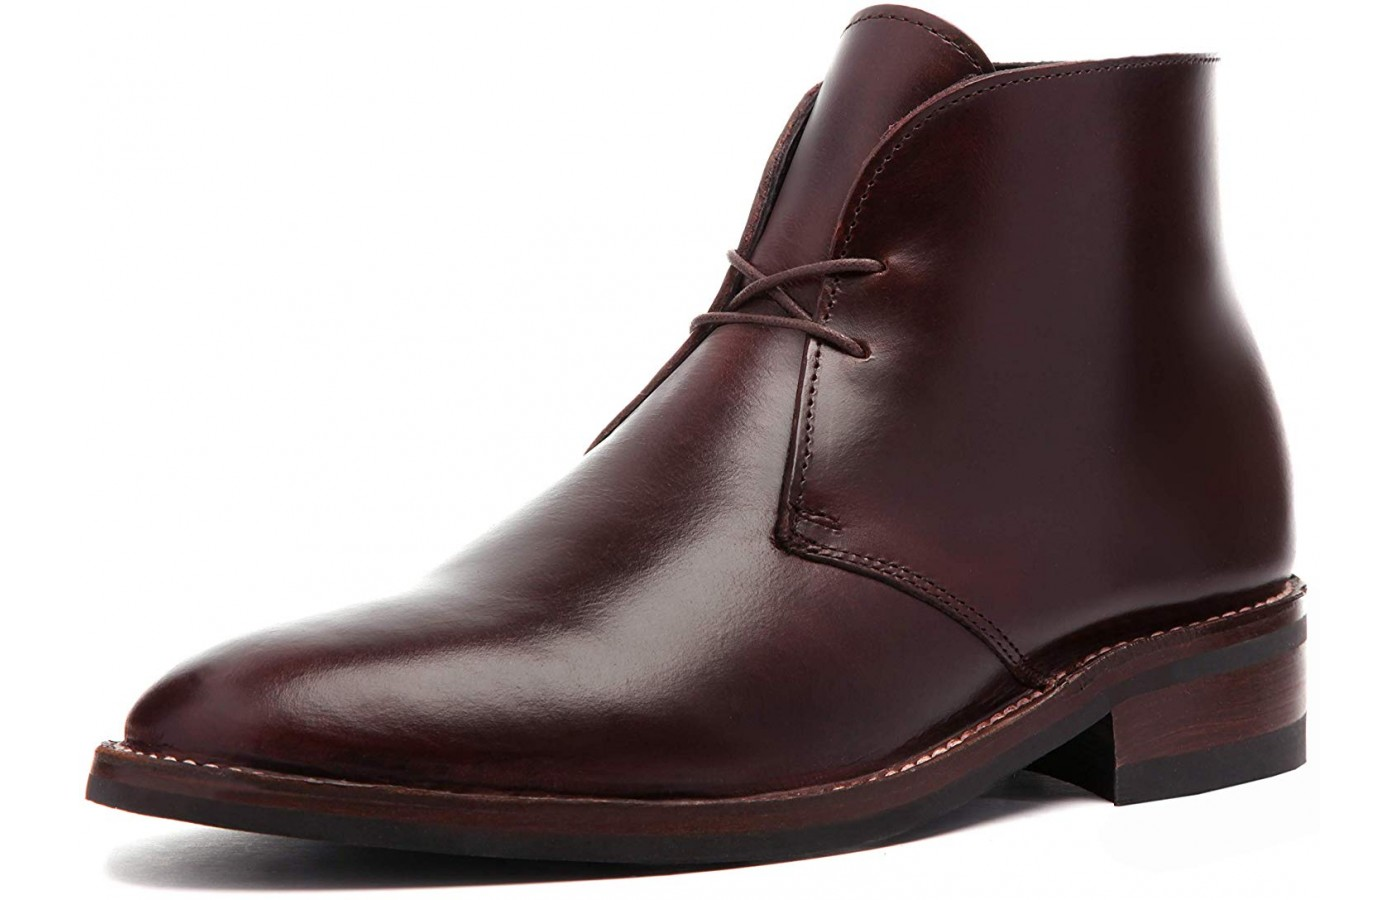 Thursday Boot Company Scout Chukka Angled View